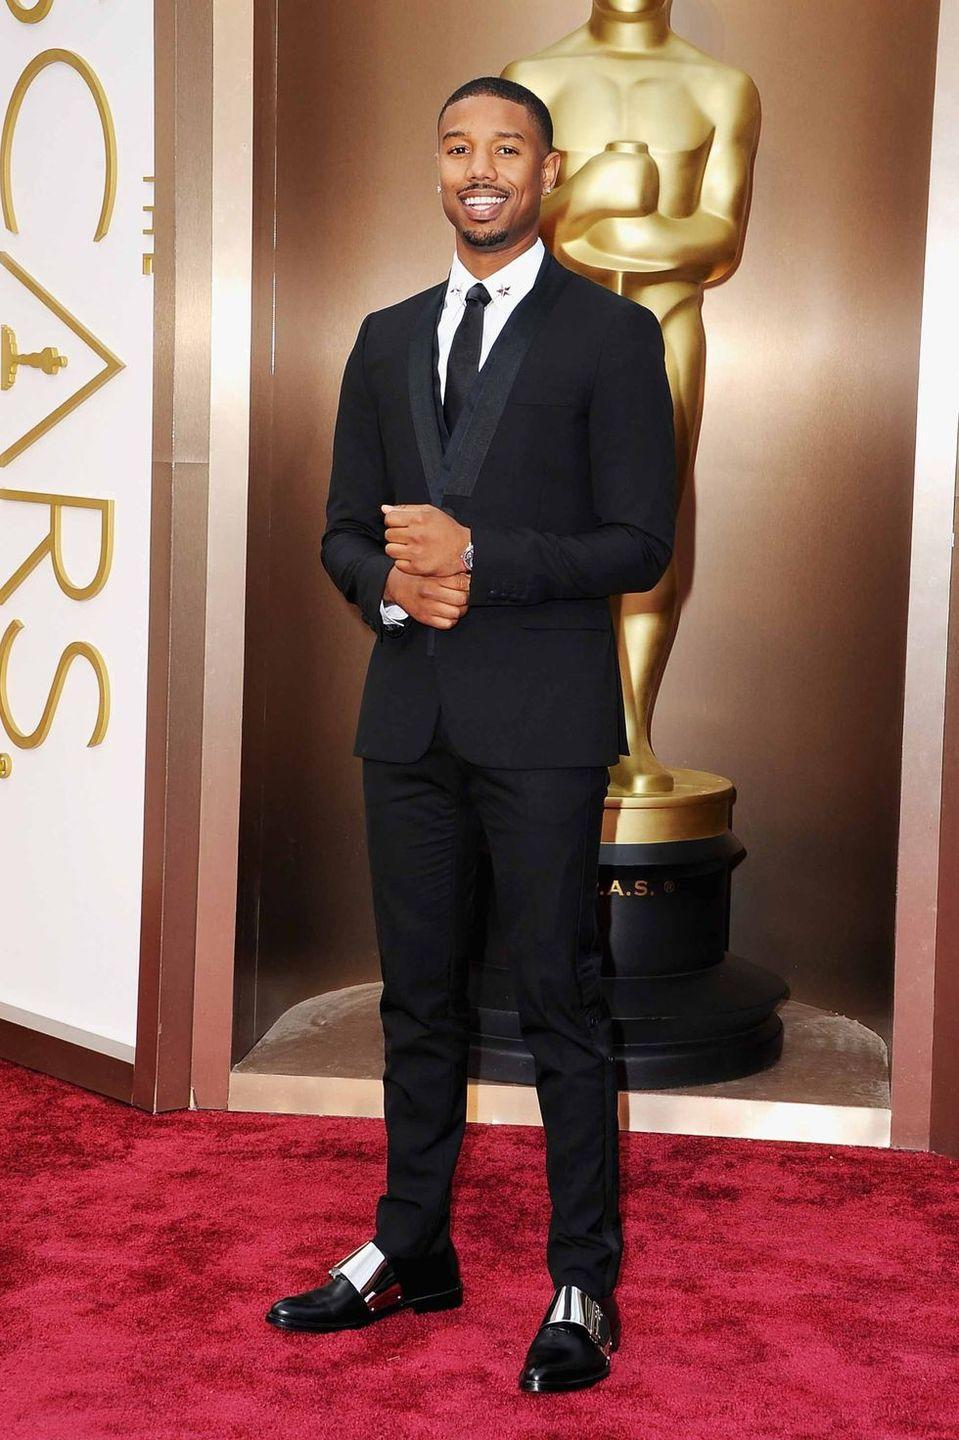 <p>Michael B. Jordan knows that blending classic (the tux) with a touch of modernity (the fit, the shoes) is always a good move.</p>